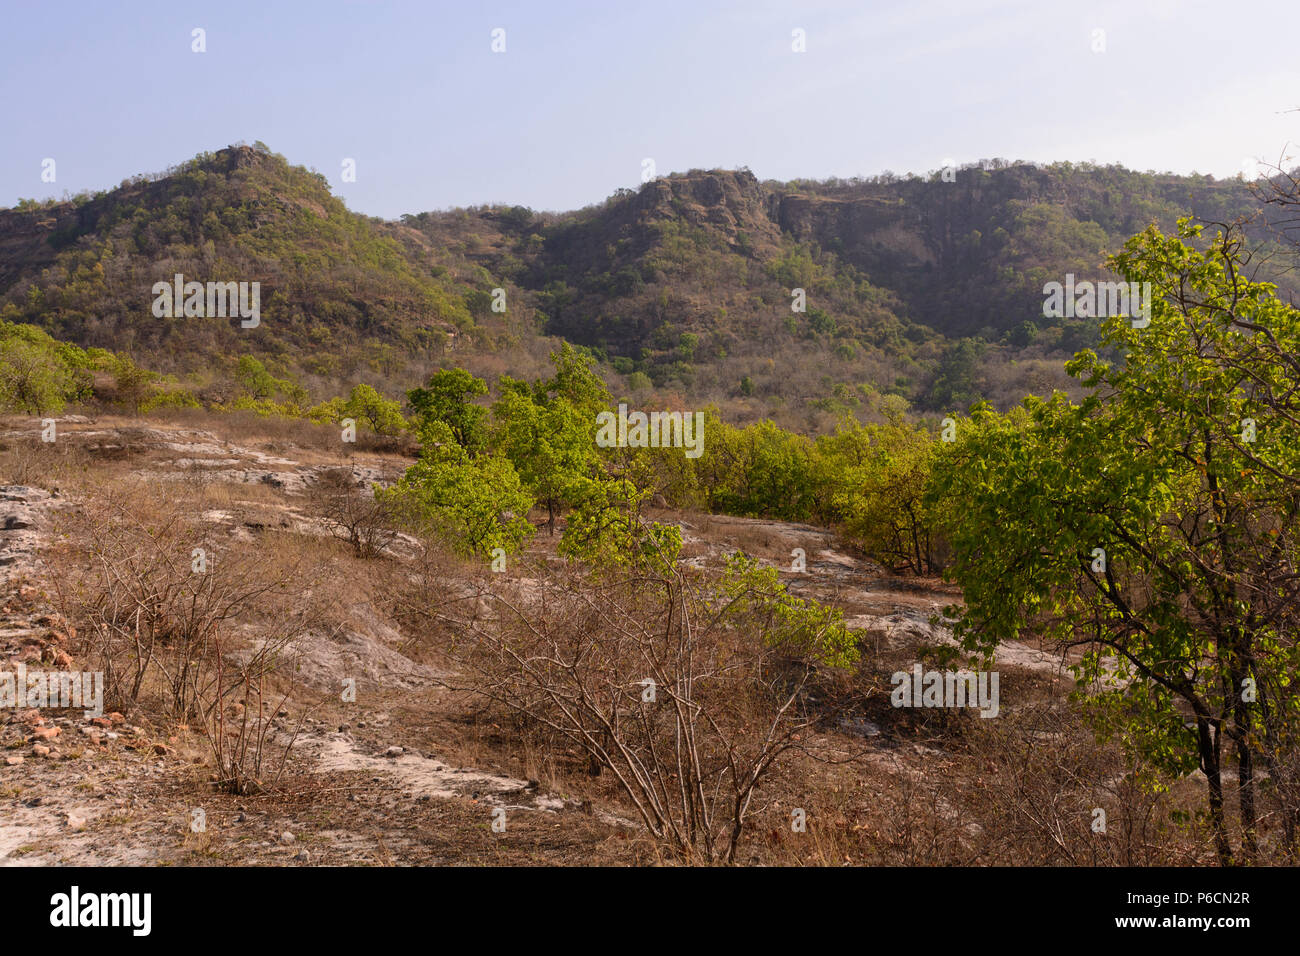 Cliffs in the Indian Wilderness of Bandhavgarh National Park in India - Stock Image